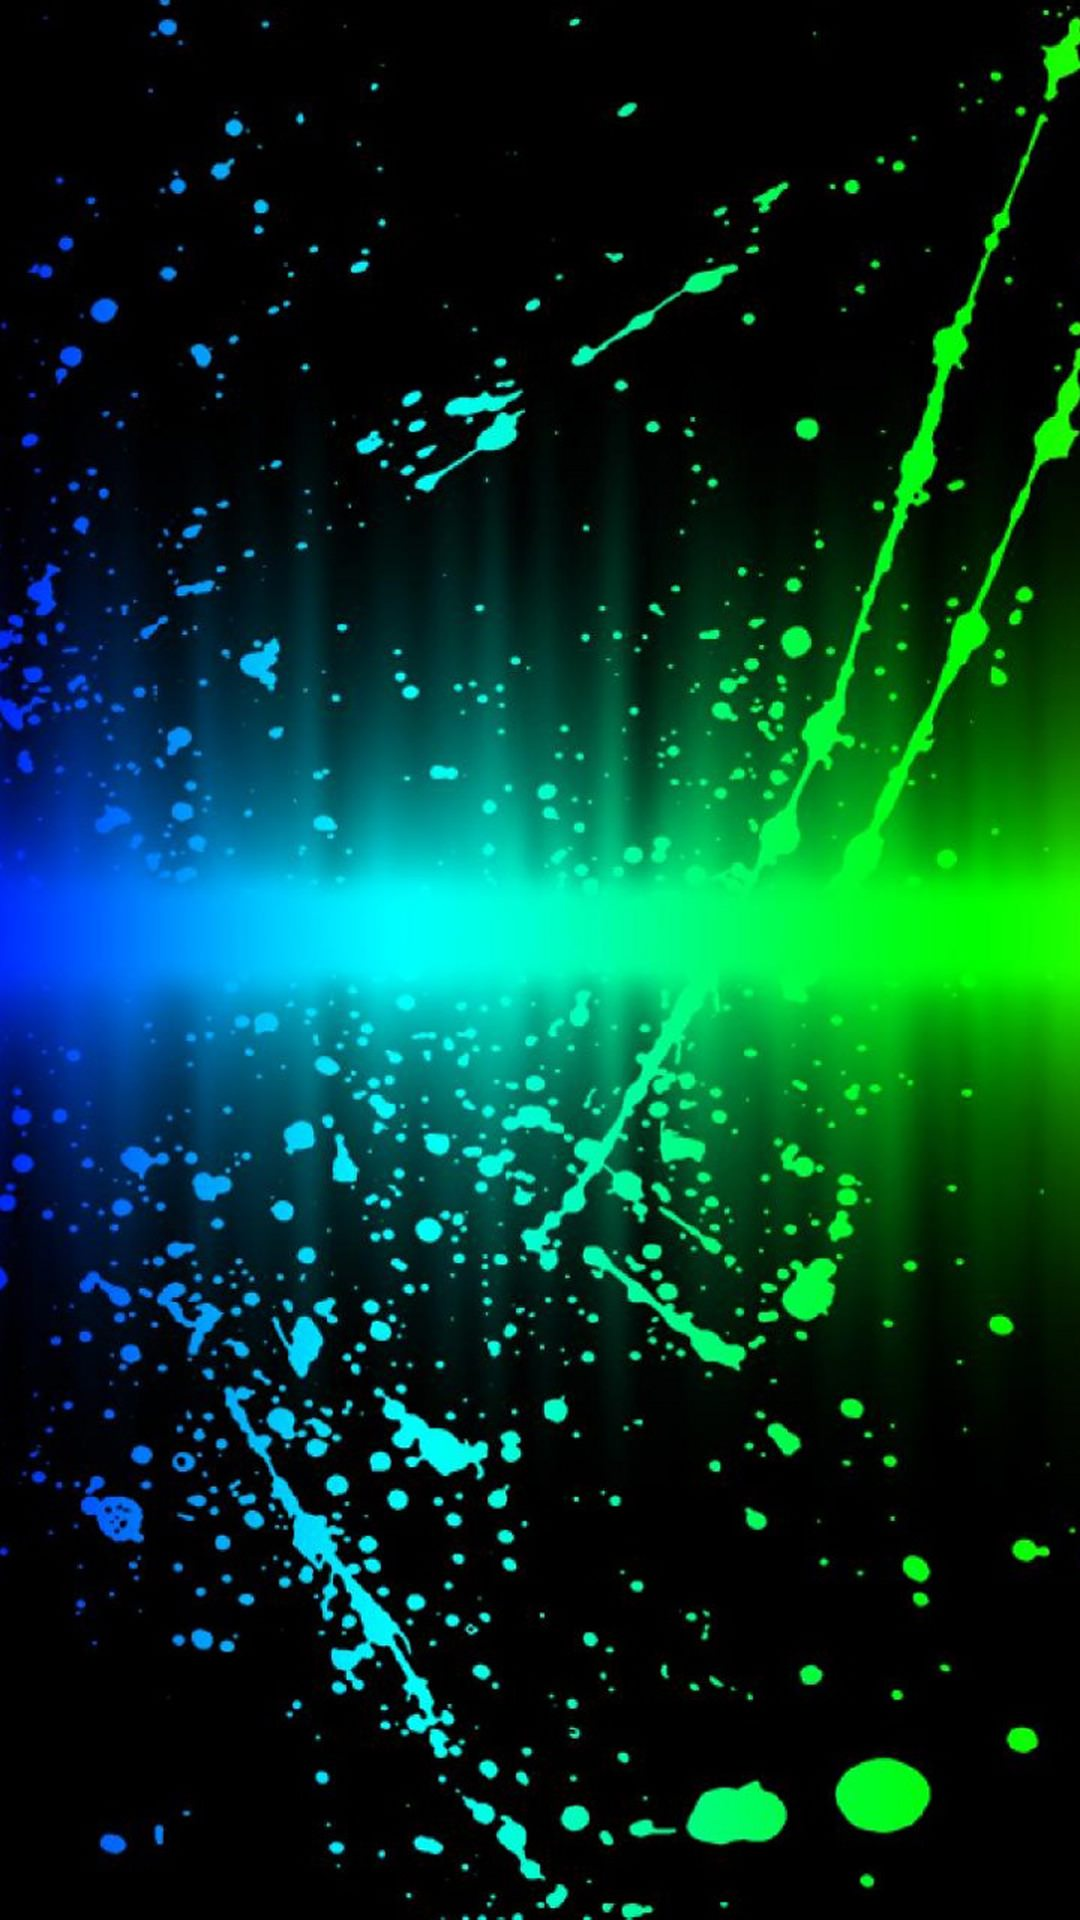 abstract blue and green neon wallpaper | iphone wallpaper